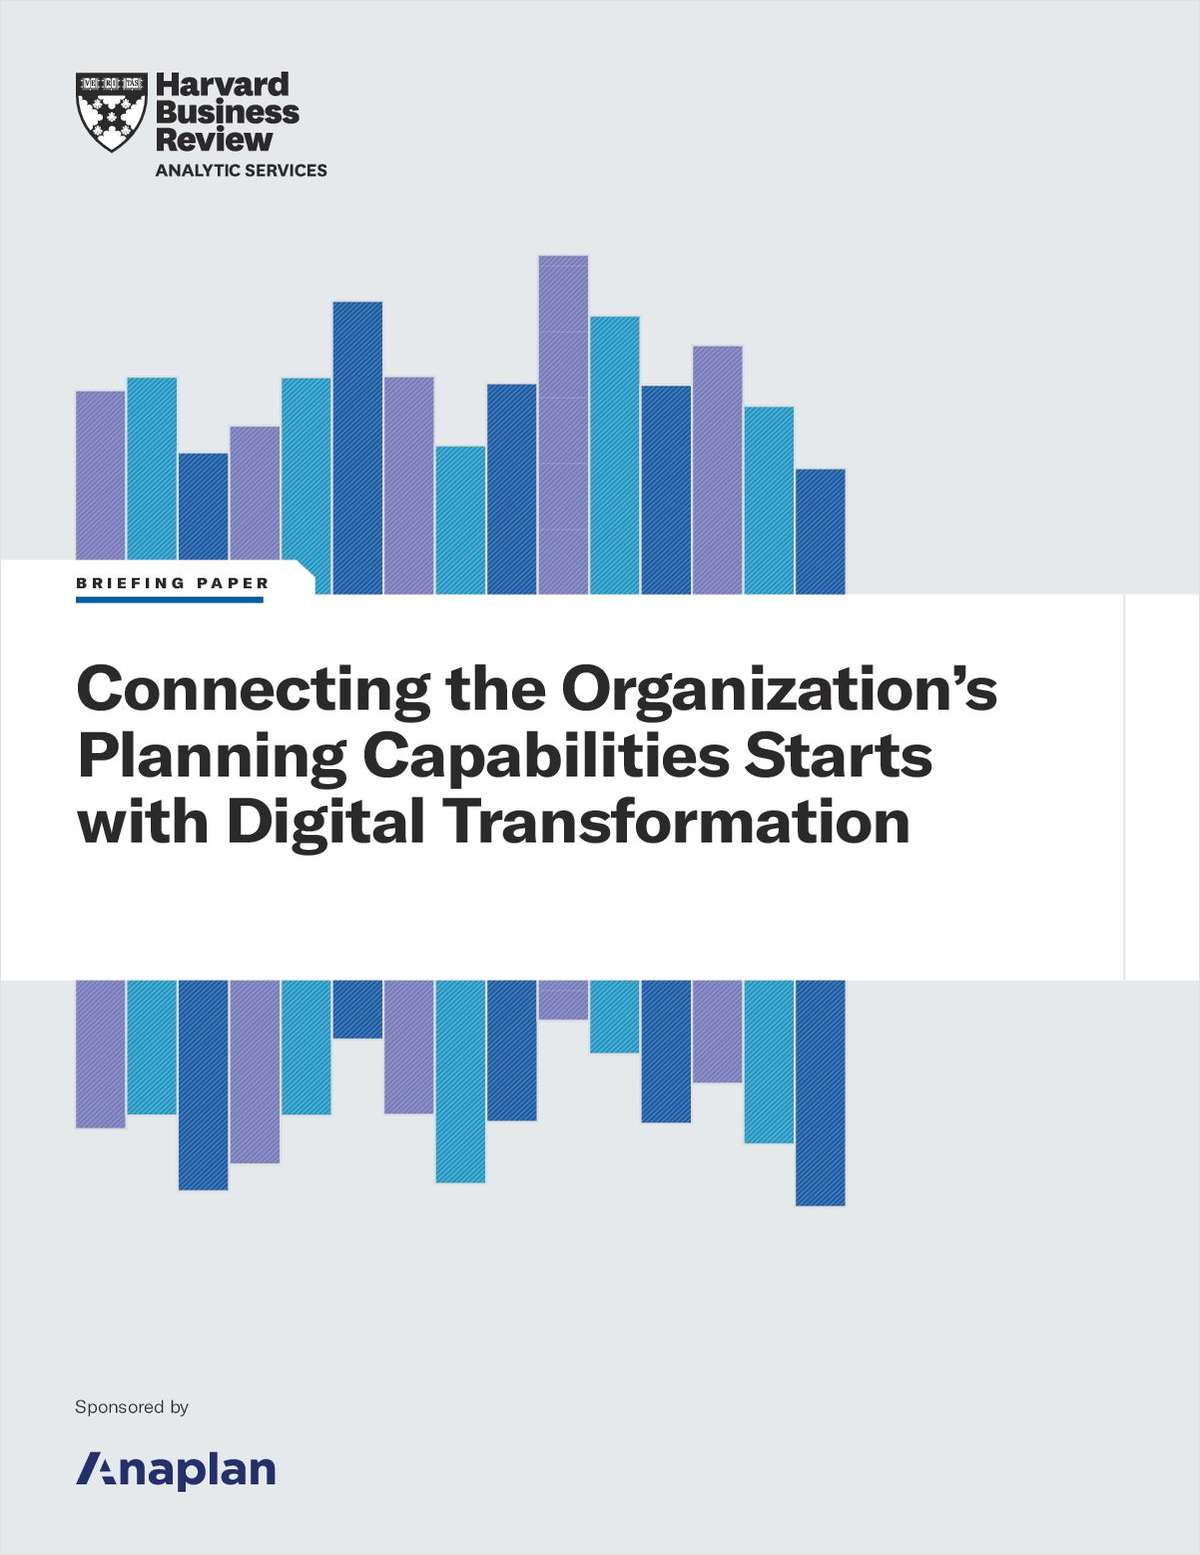 White Paper: Connecting the Organization's Planning Capabilities Starts with Digital Transformation